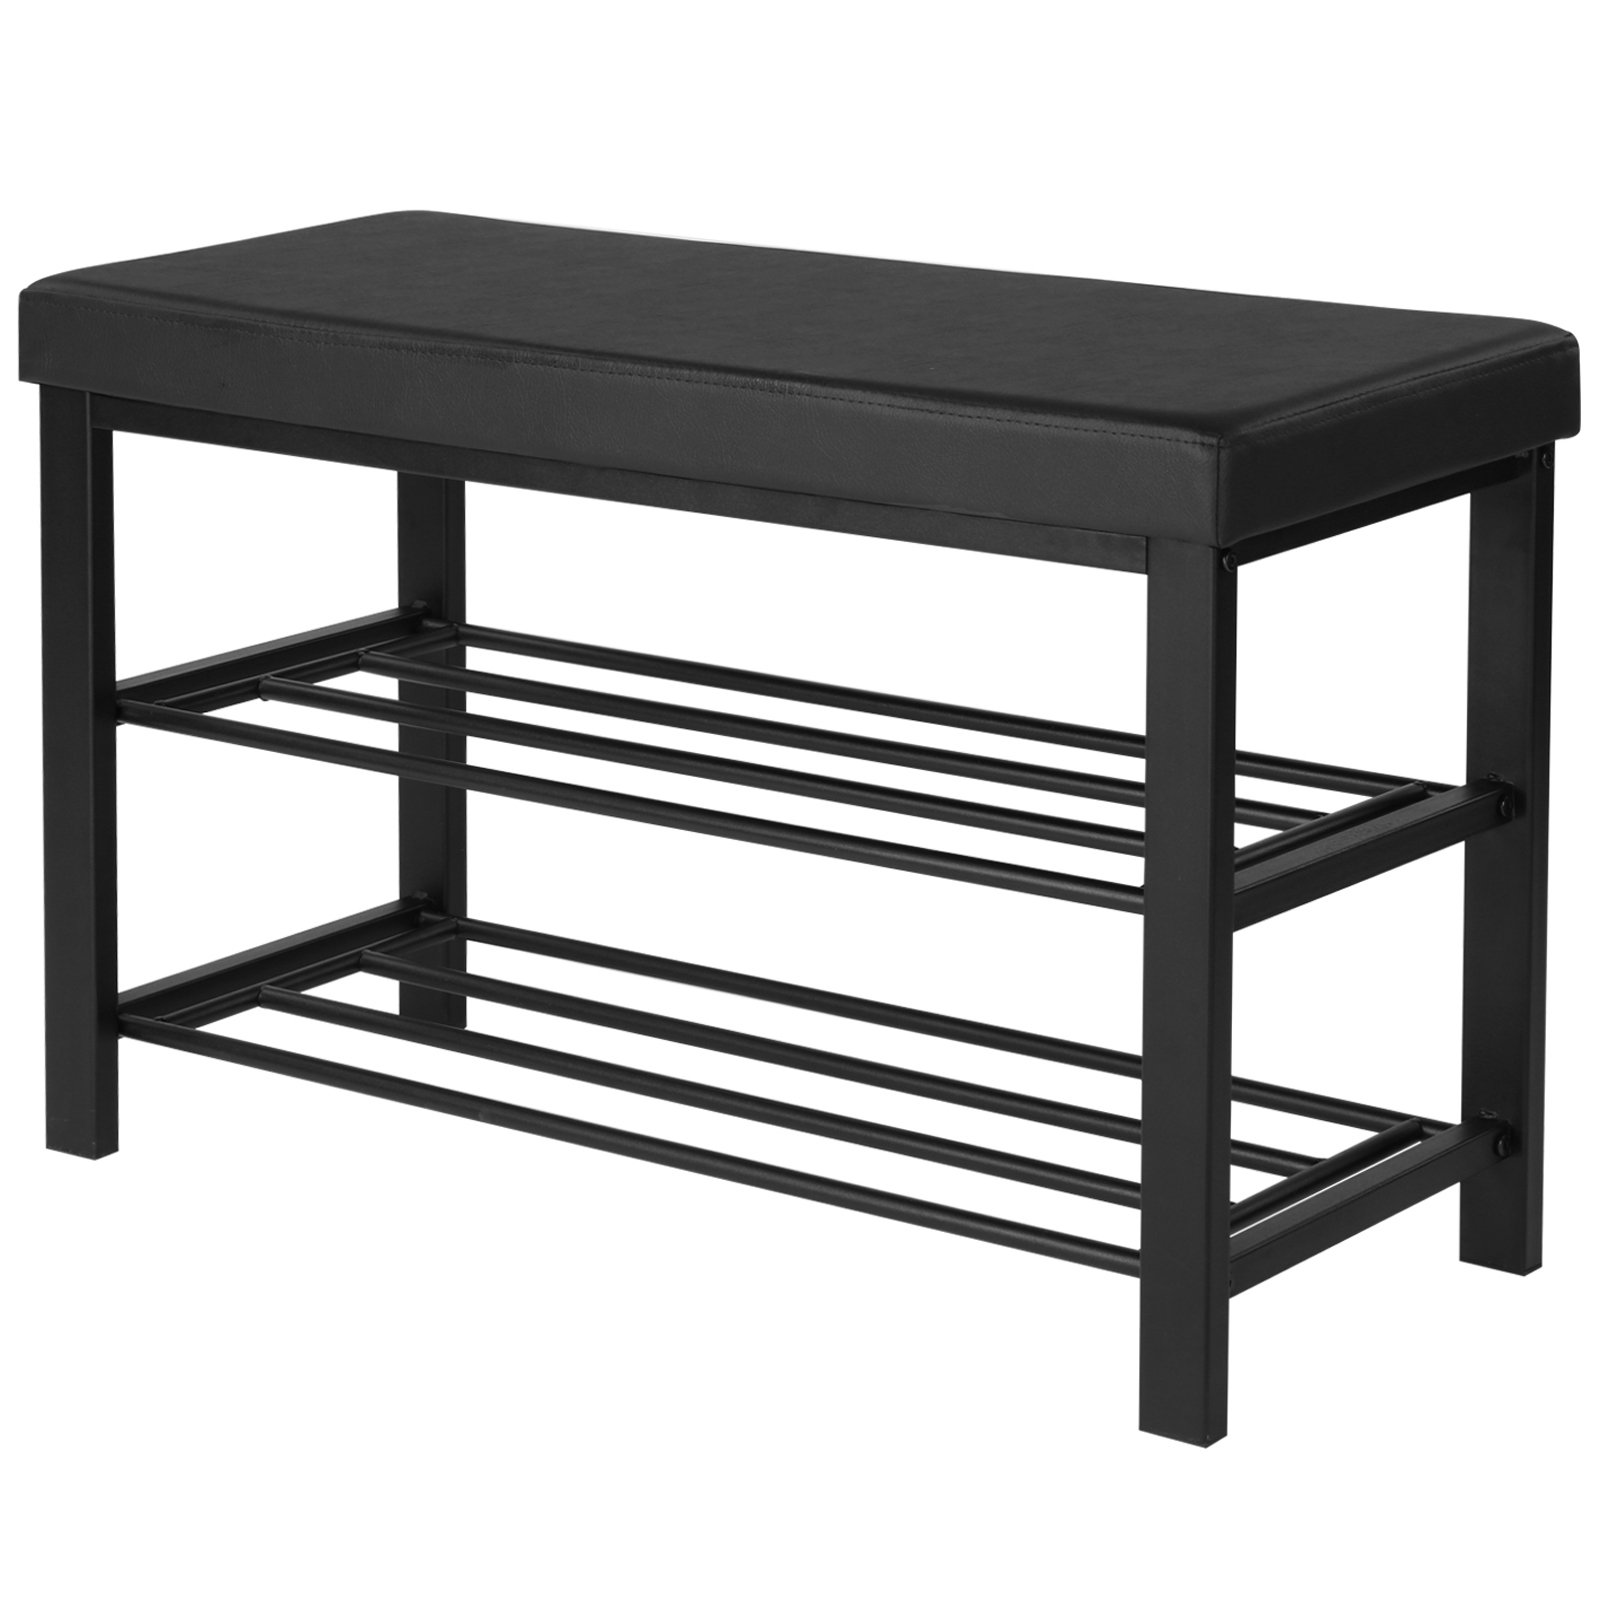 SONGMICS 32'' L Metal Shoe Rack Bench, 2-Tier Entryway Shoe Storage Organizer with Comfy cushioned seat, Holds Up to 440 Lbs, Black,ULBS58H